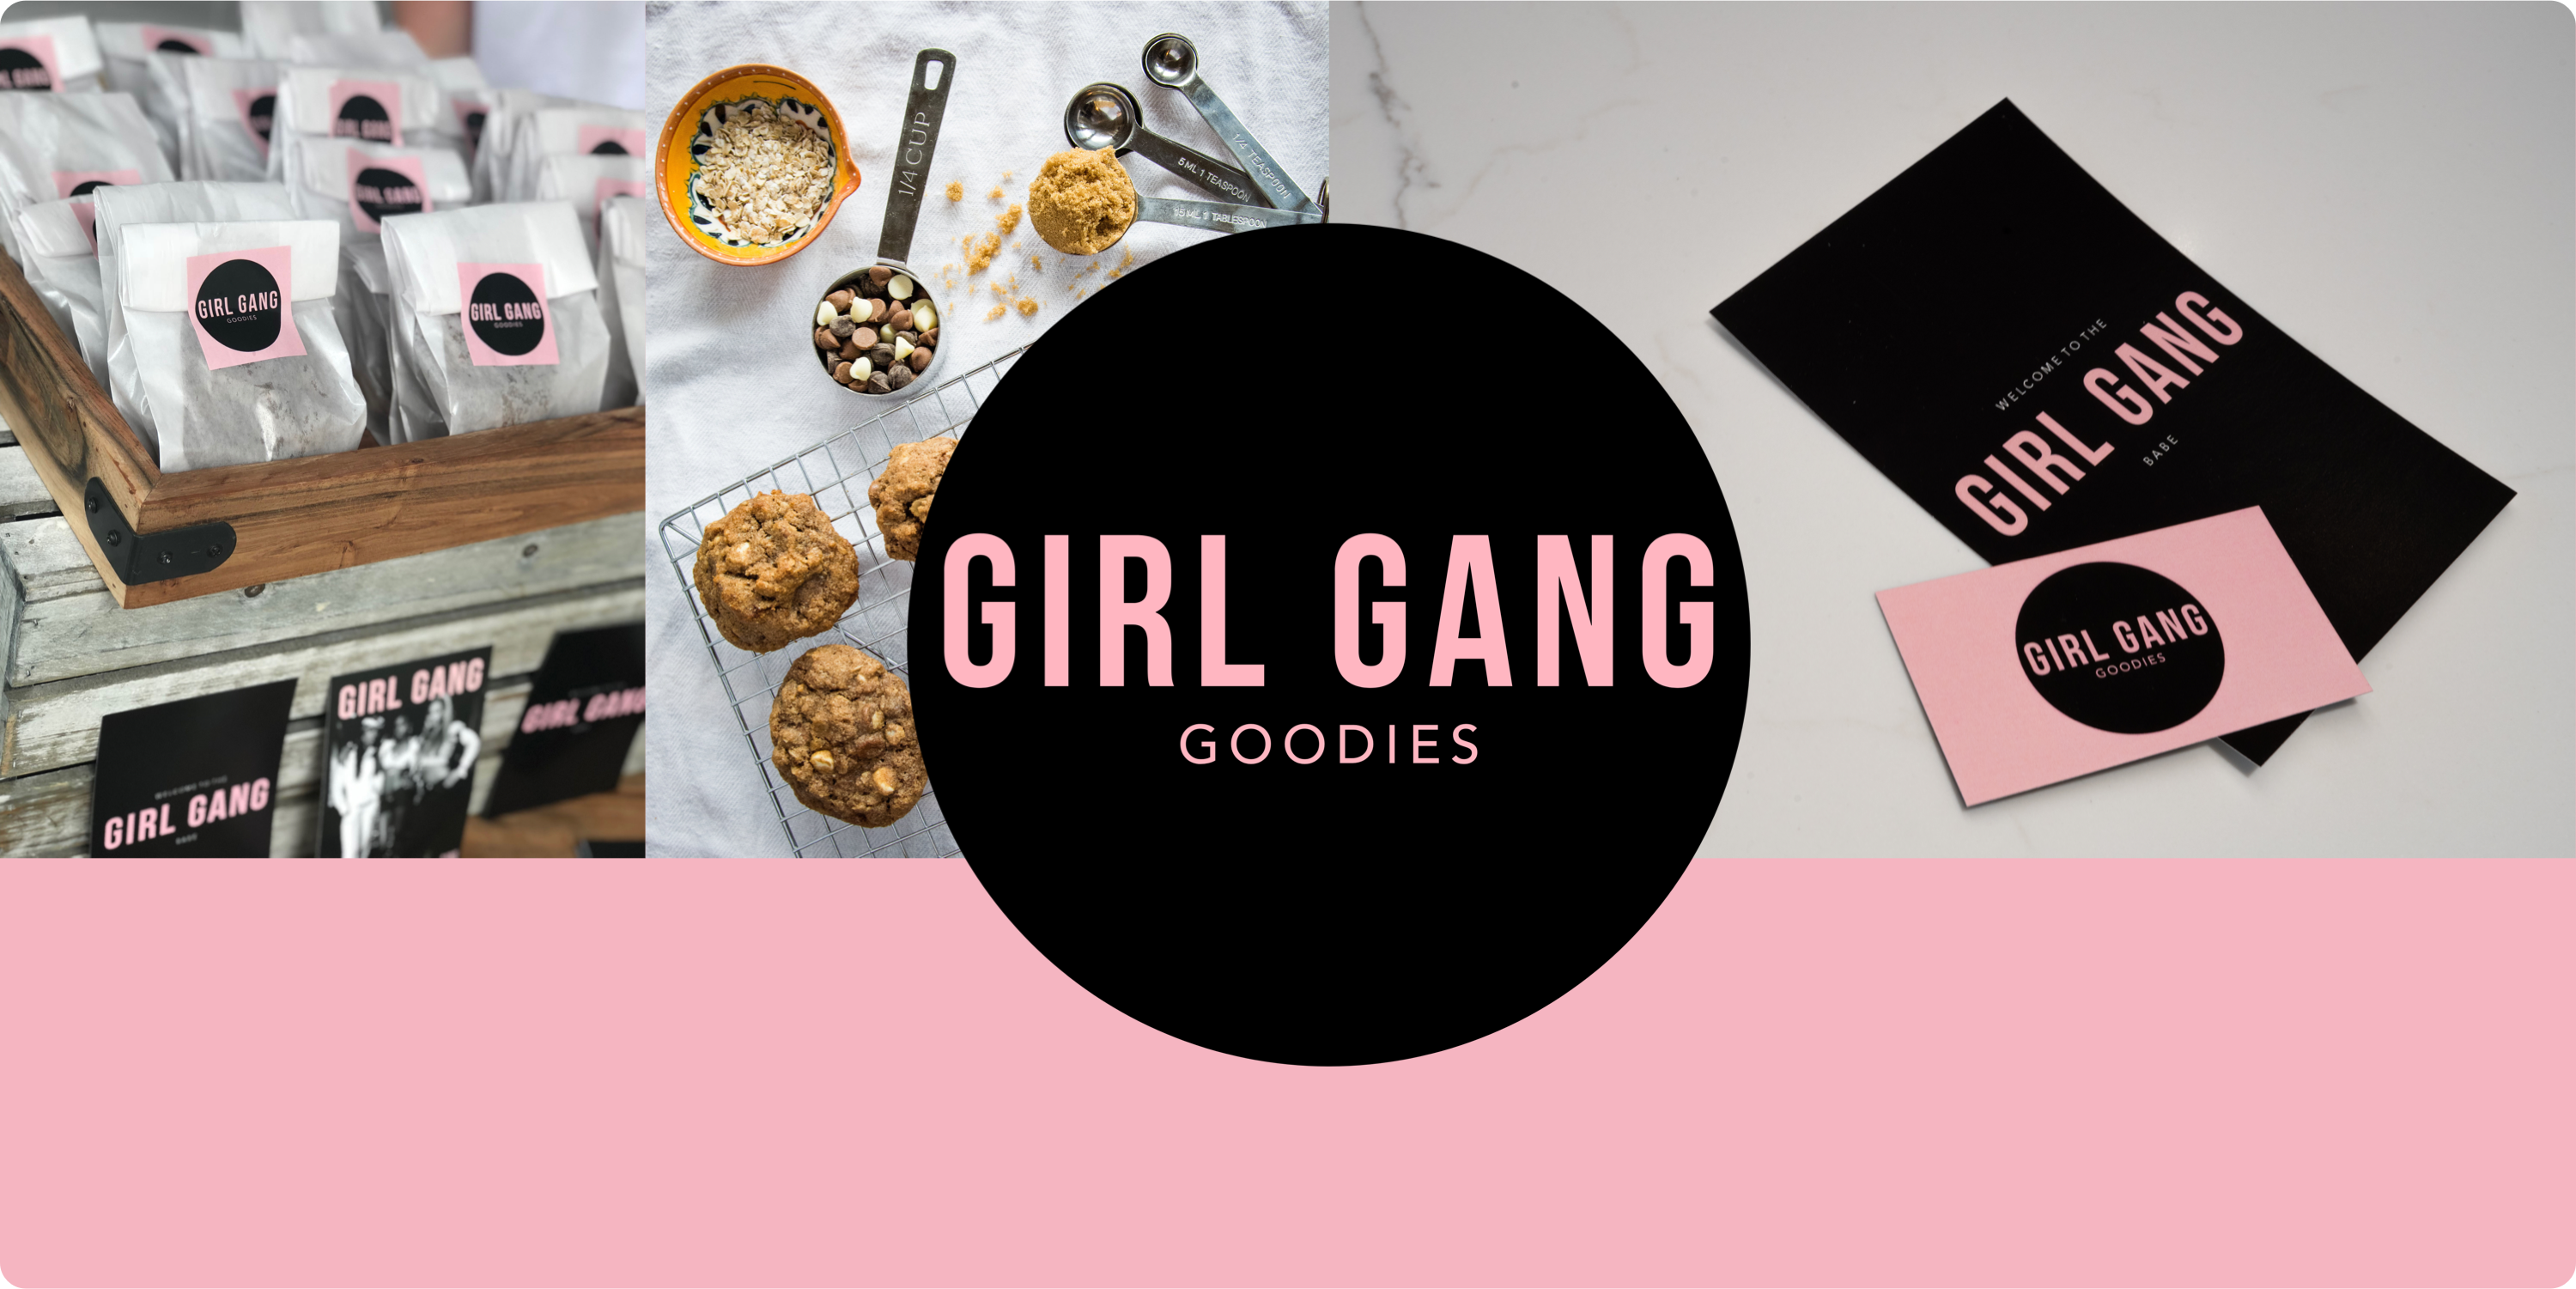 Girl Gang Goodies branding